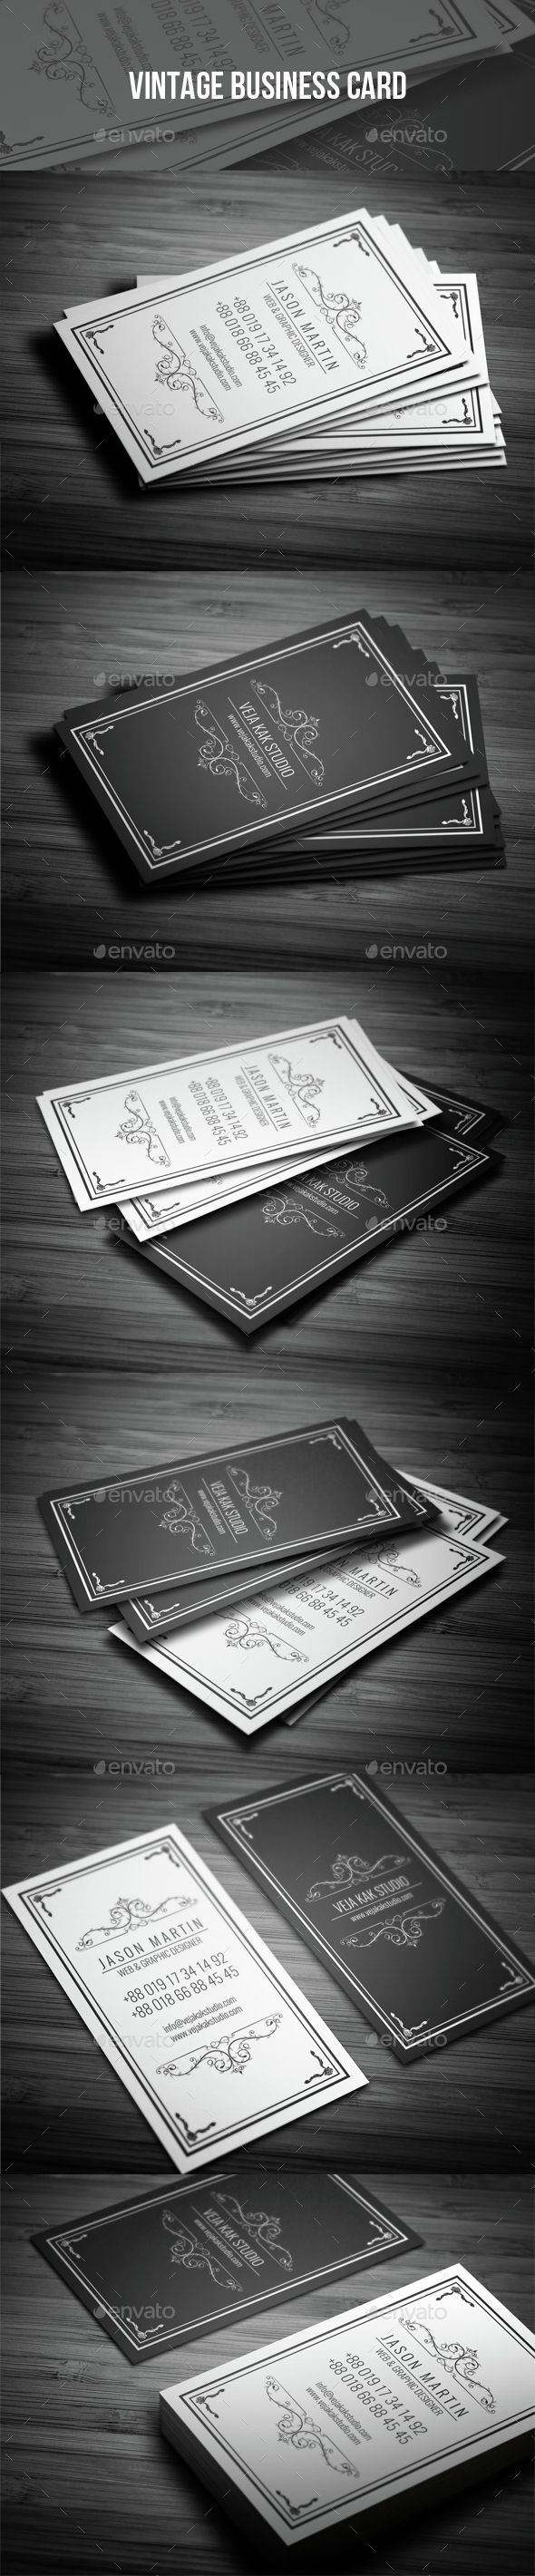 Vintage Business Card | Pinterest | Business cards, Business and ...